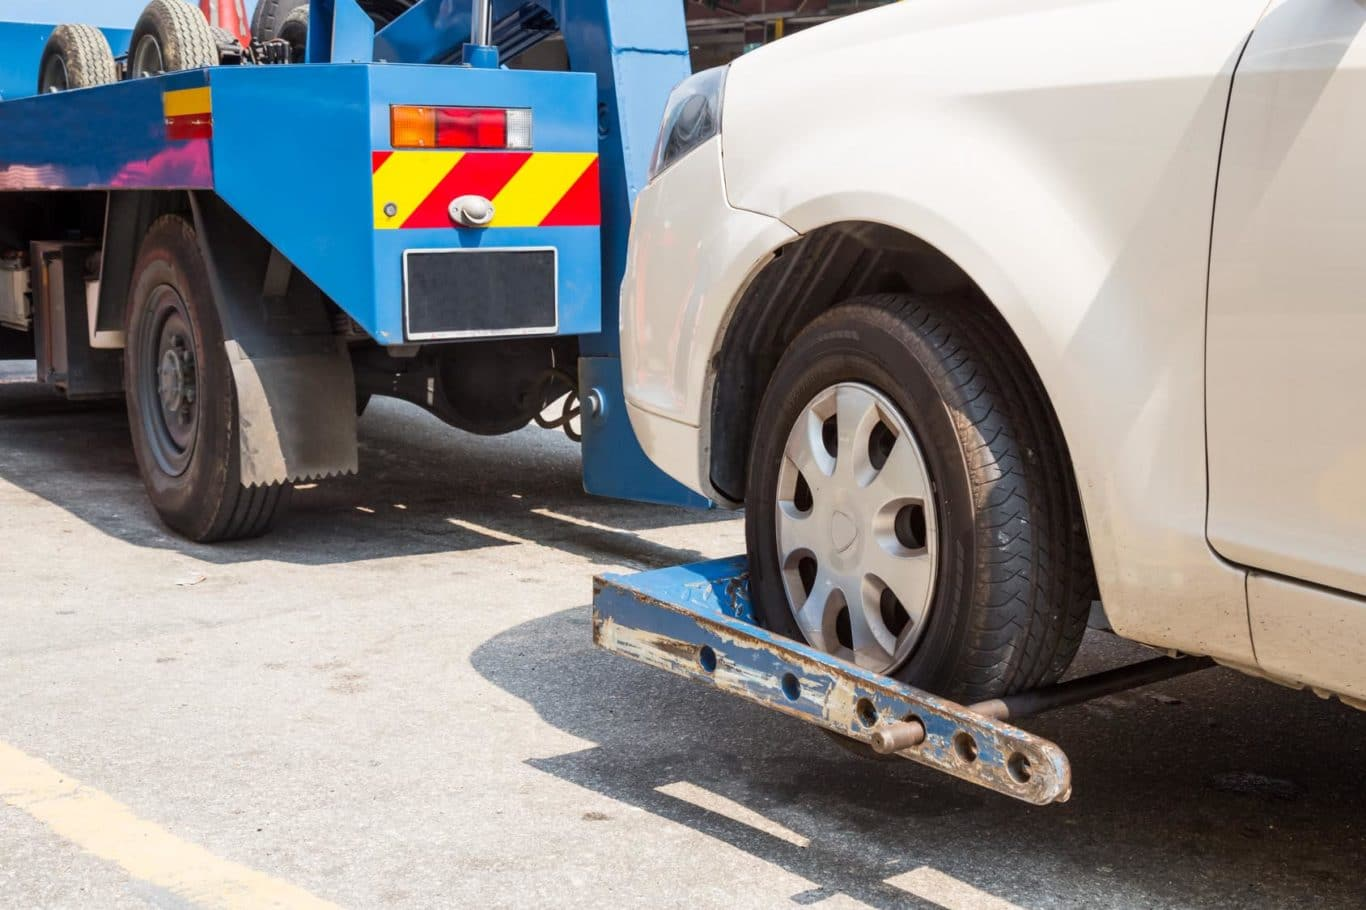 Celbridge expert Car Recovery services